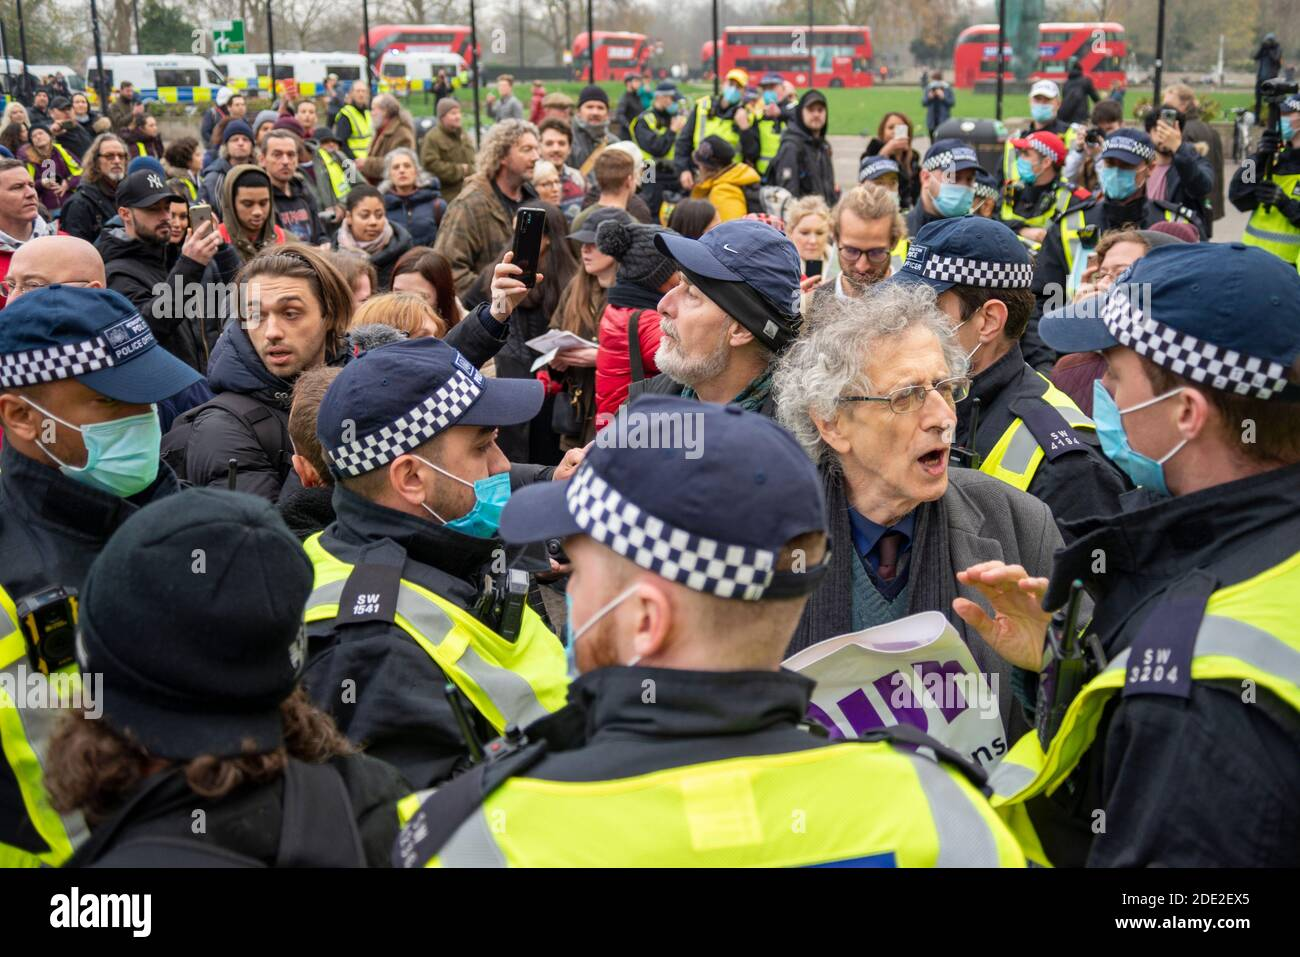 marble-arch-london-uk-28th-nov-2020-a-protest-is-taking-place-against-the-lockdown-restrictions-in-place-for-the-covid-19-coronavirus-pandemic-despite-the-metropolitan-police-issuing-a-statement-to-remind-protesters-that-such-a-gathering-would-be-unlawful-during-the-current-regulations-many-still-attended-protesters-joined-piers-corbyn-at-speakers-corner-and-headed-out-corbyn-was-surrounded-by-police-in-marble-arch-in-an-attempt-to-stop-the-protest-corbyn-was-later-arrested-2DE2EX5.jpg